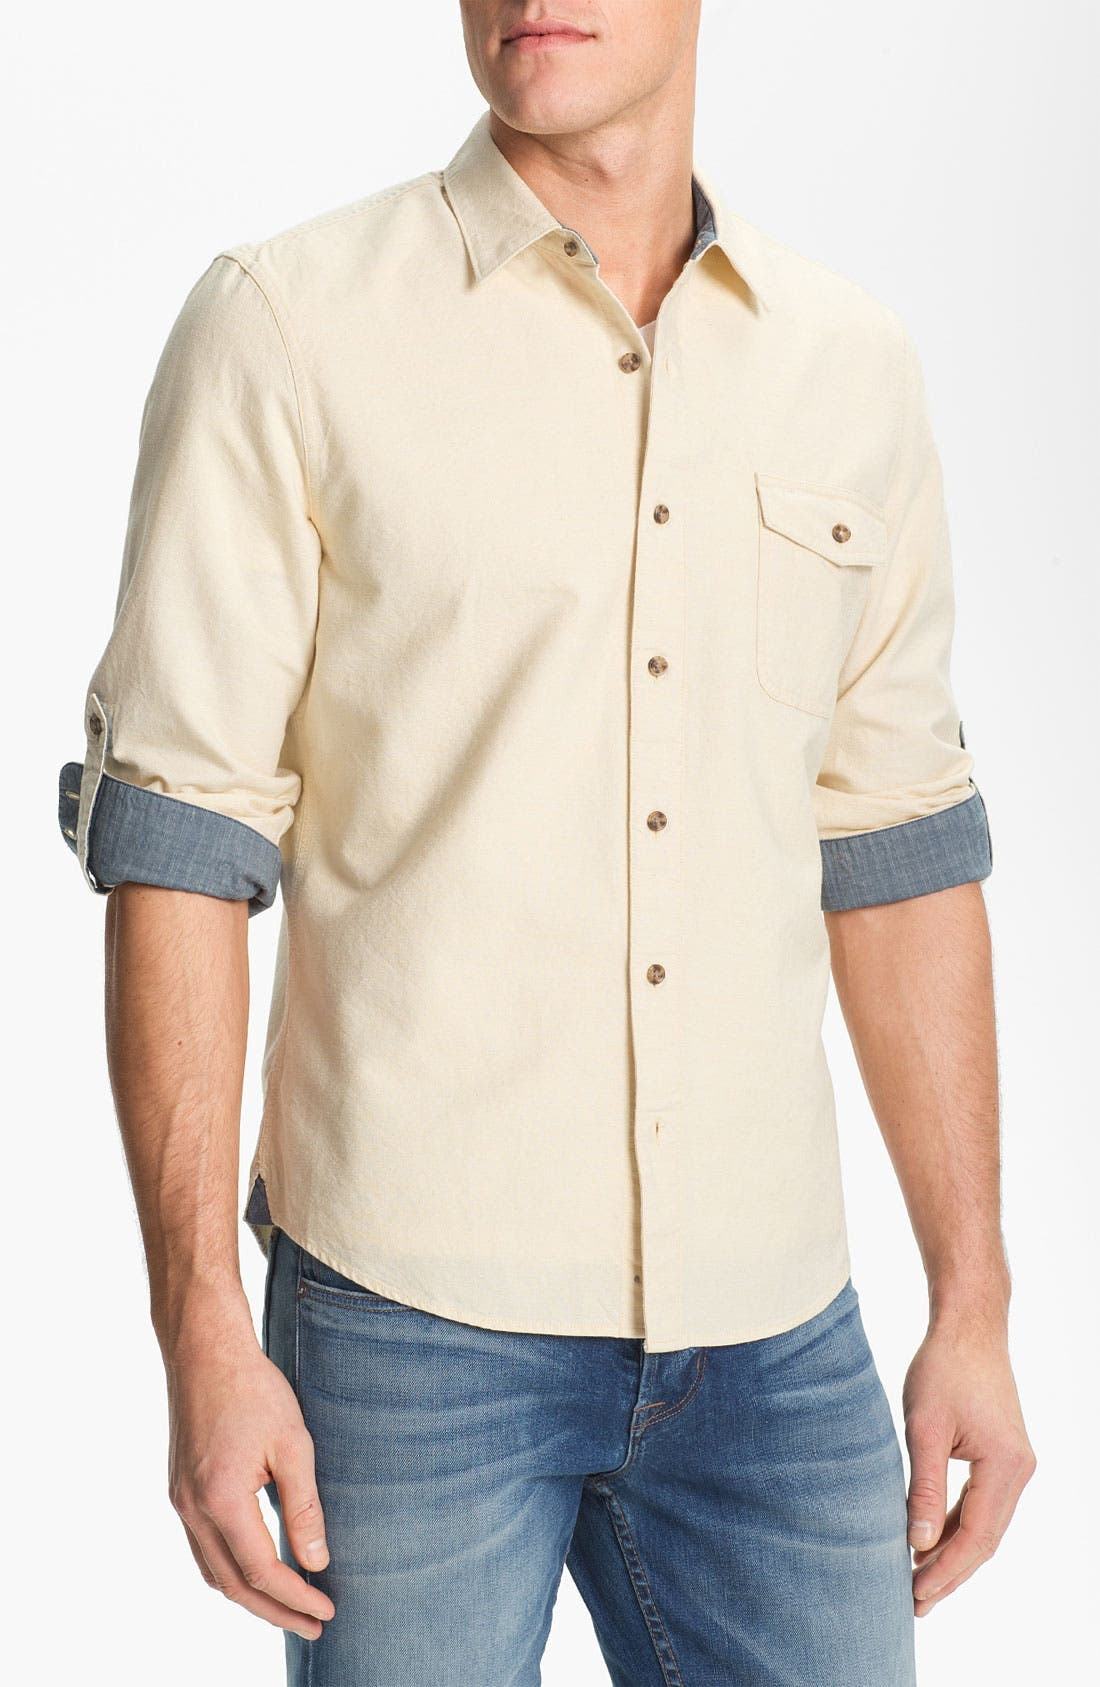 Alternate Image 1 Selected - 1901 Oxford Shirt